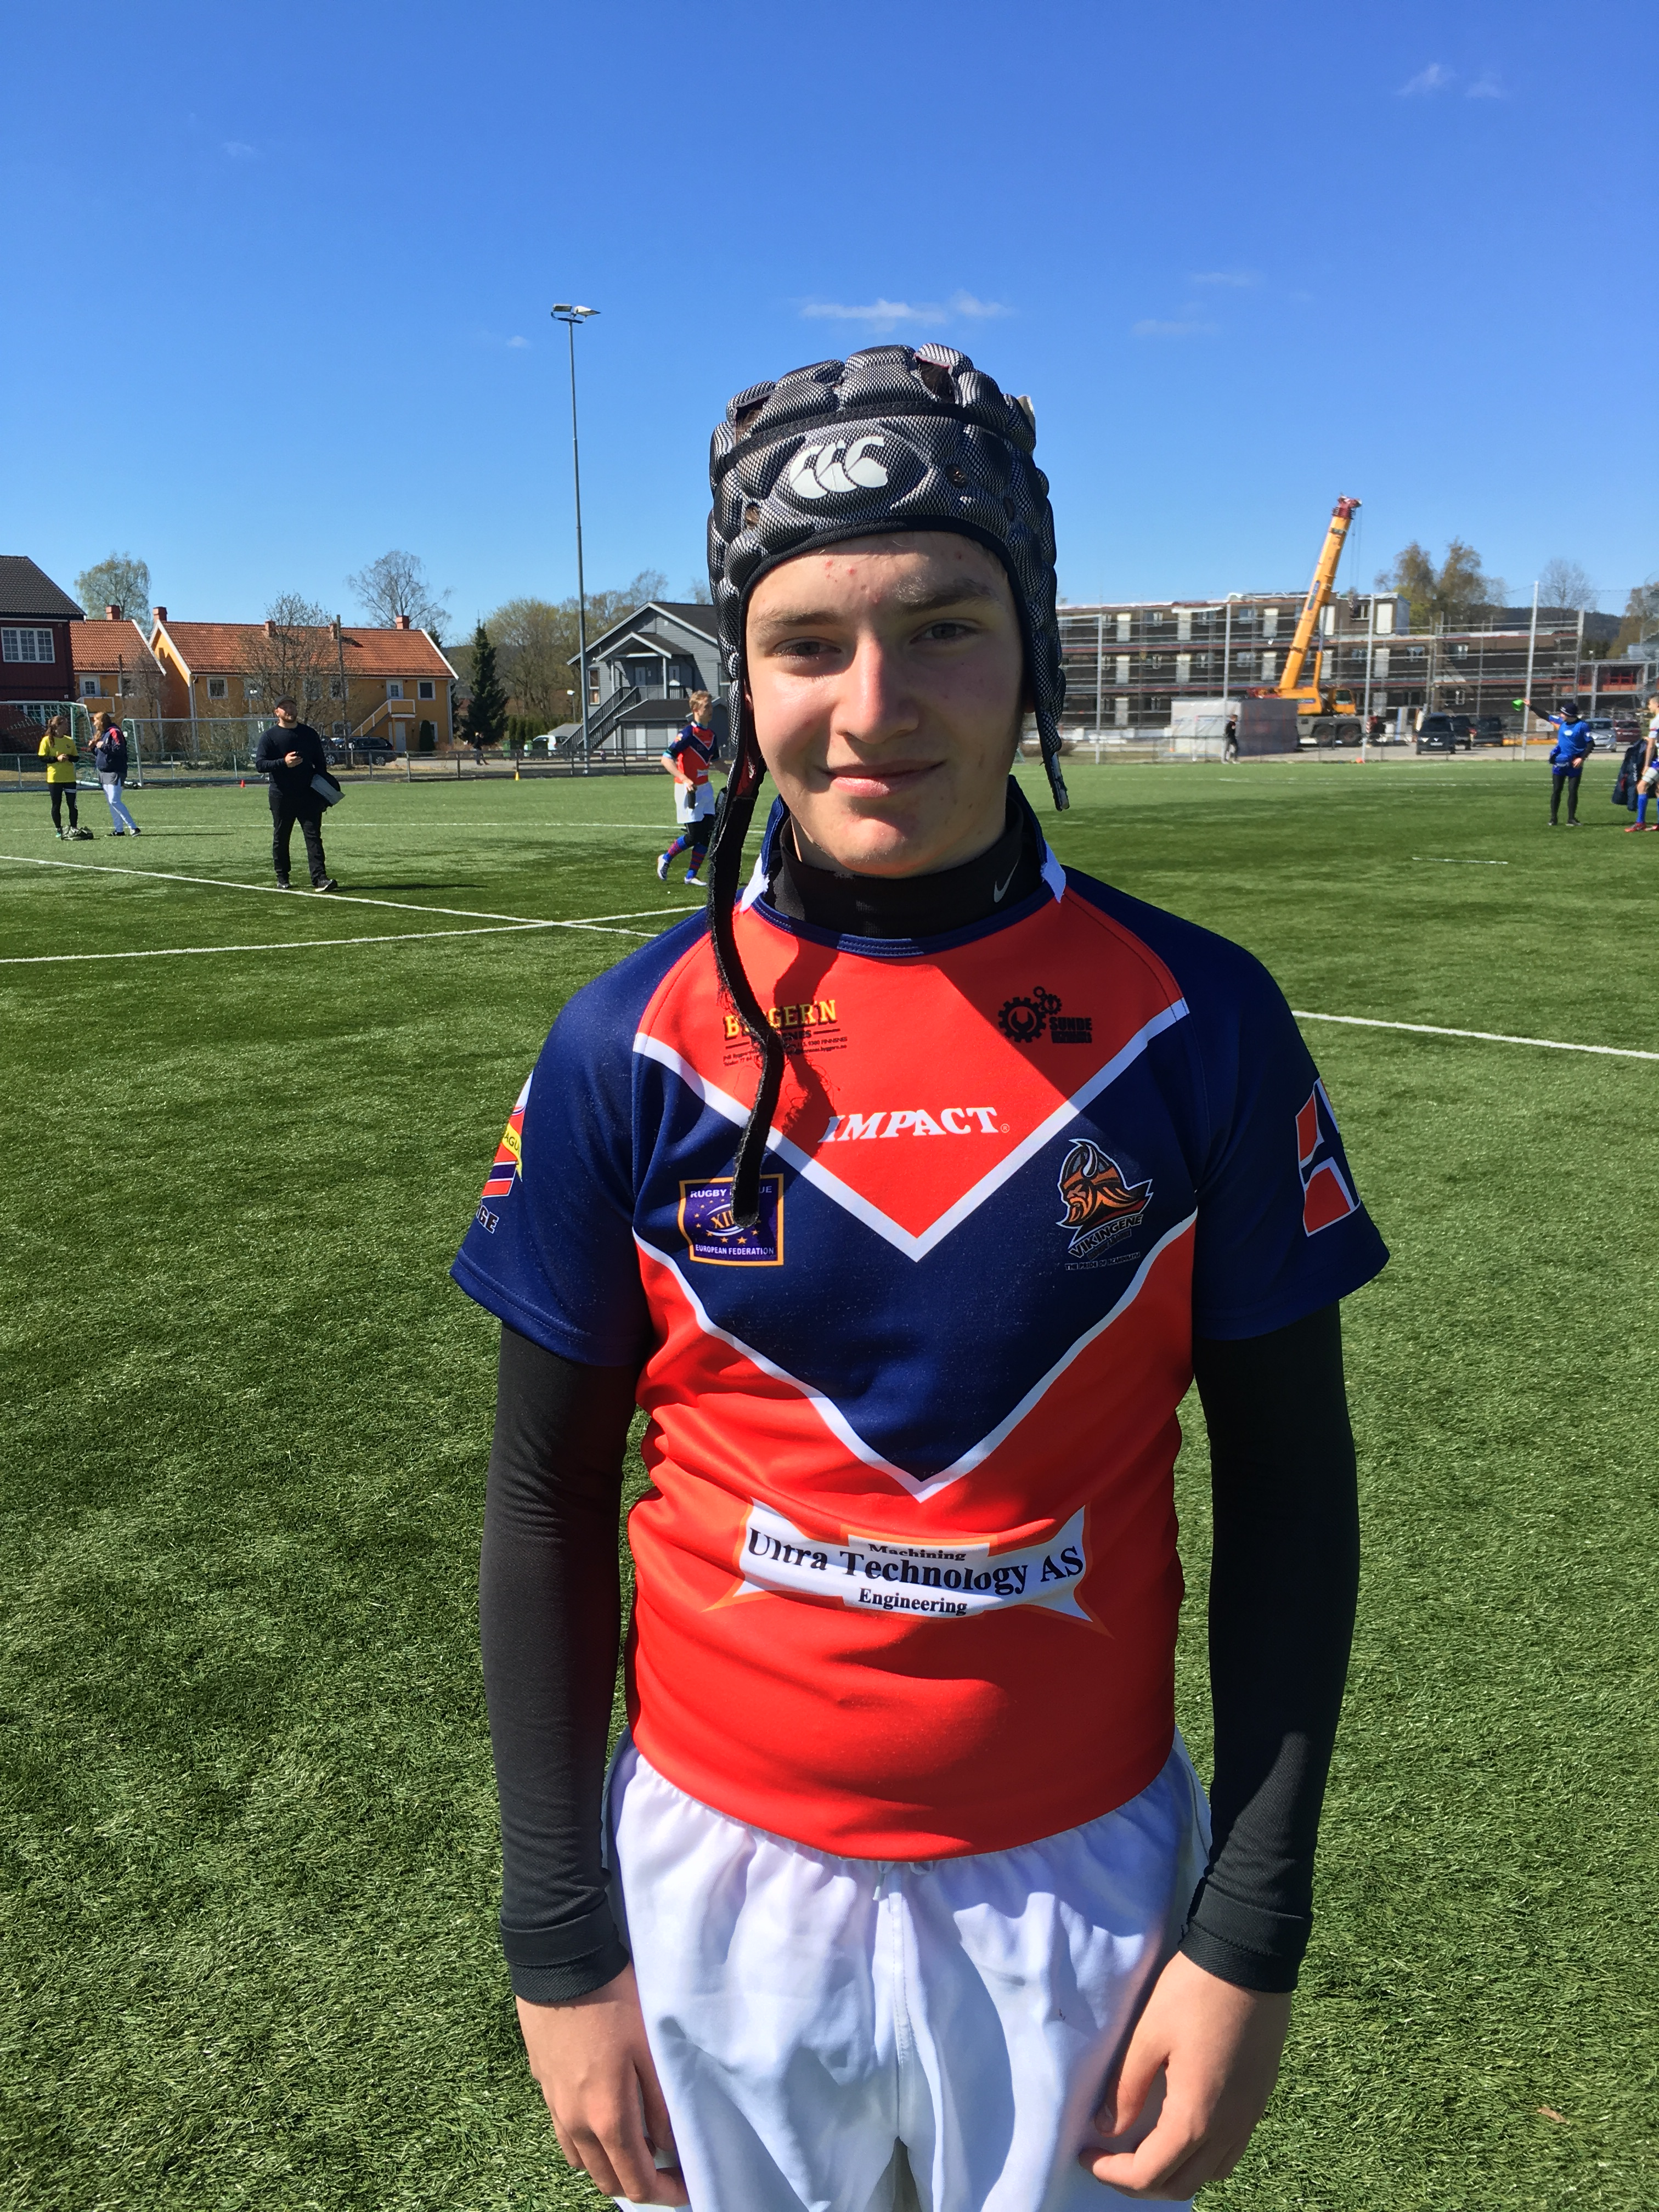 KRISTIAN DEBUTS FOR NORWAY